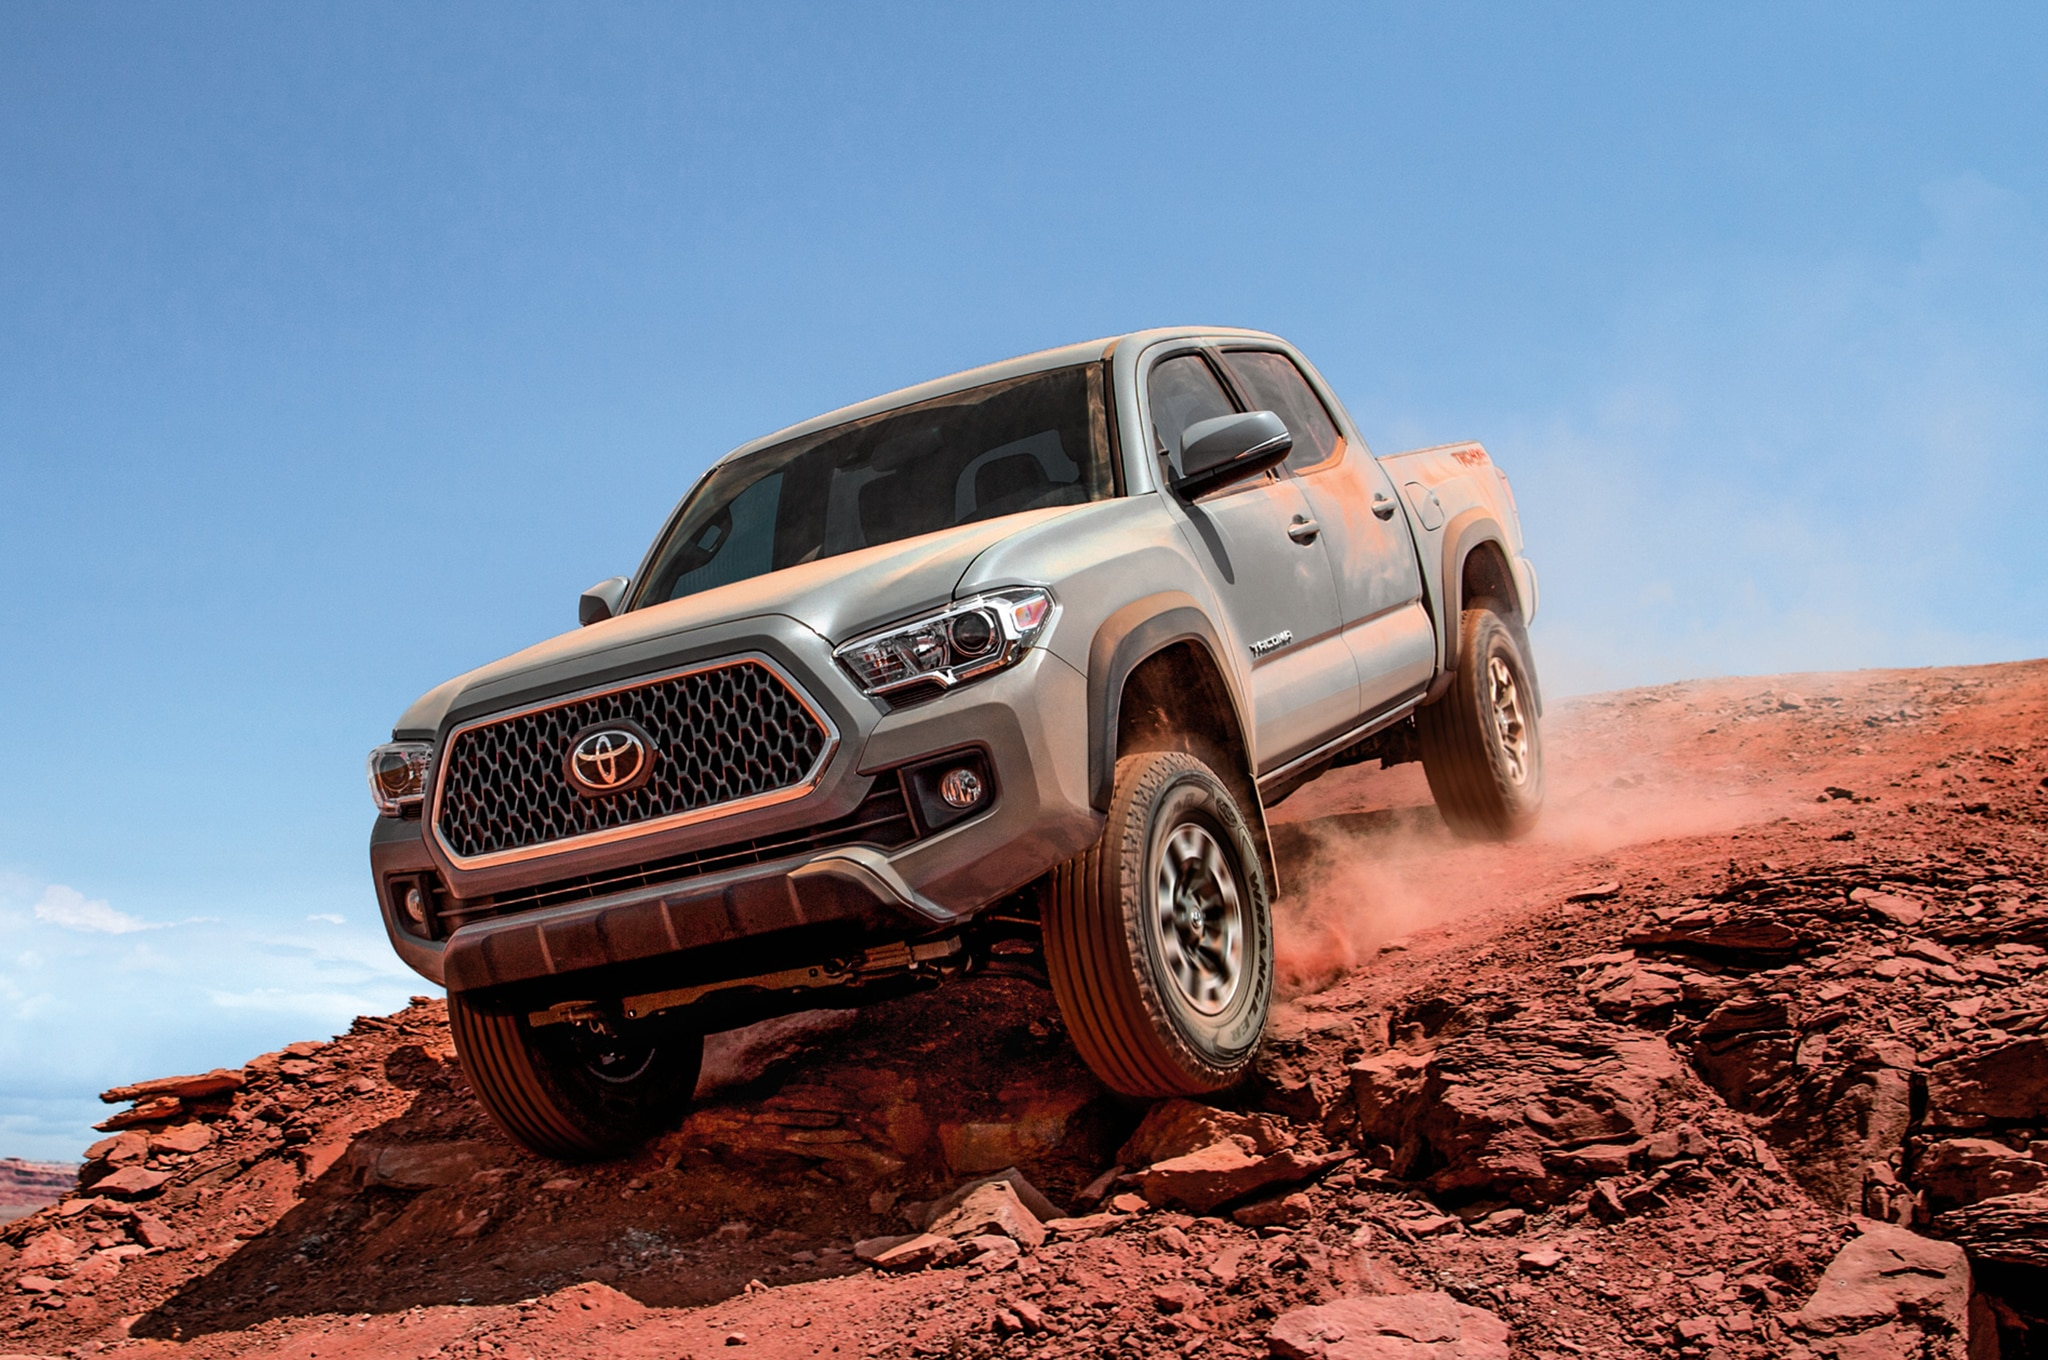 tacoma toyota trd sport taco near tour springs colorado models exterior siriusxm offer standard motortrend including exclusive front st castle